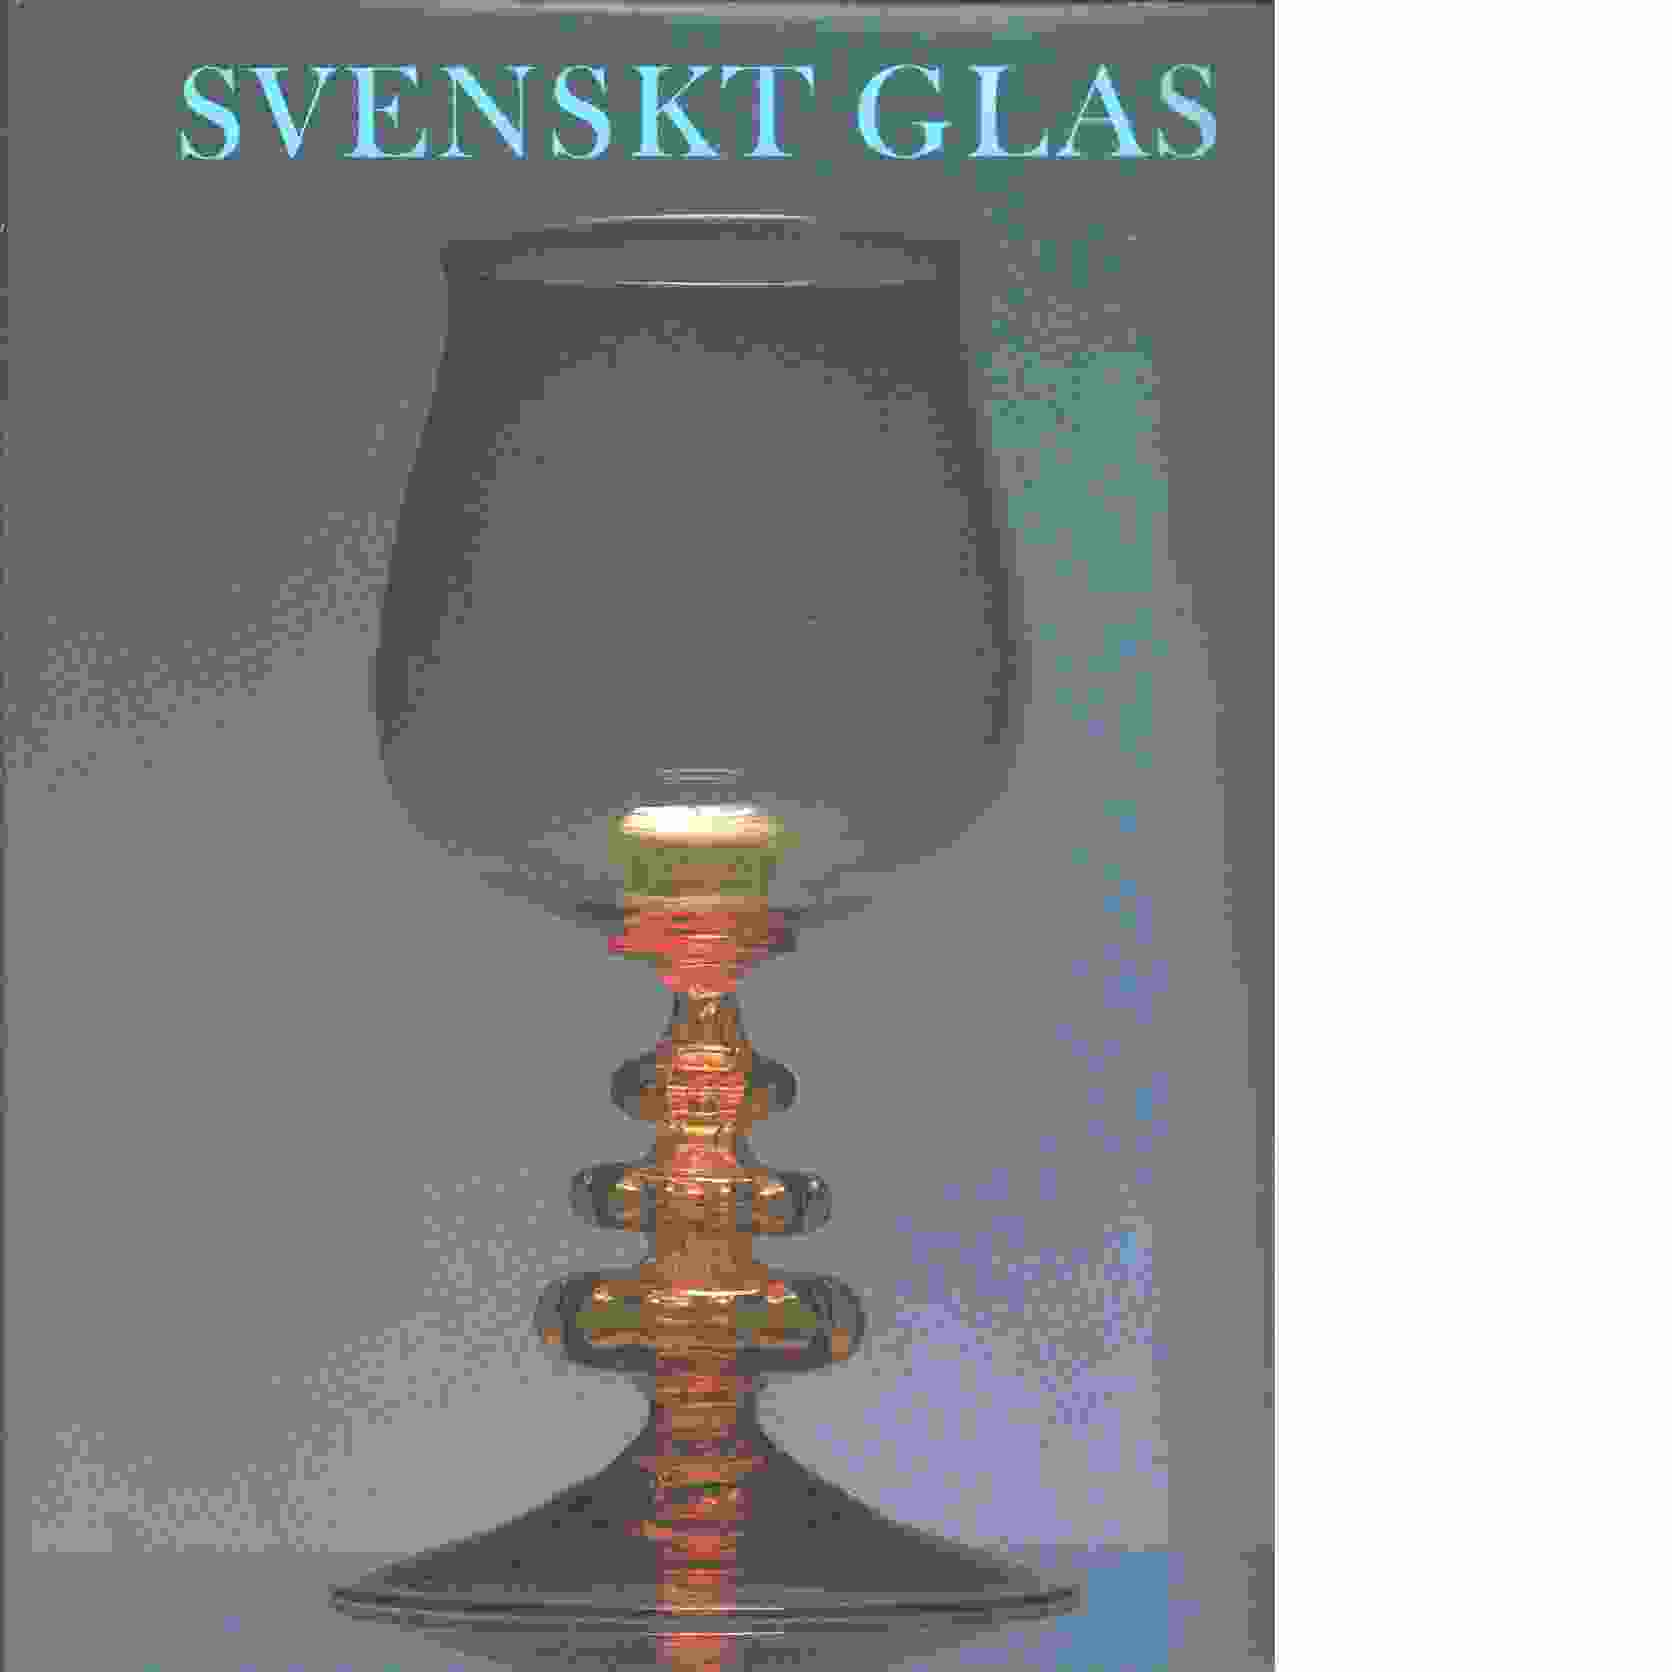 Svenskt glas - Red. Brunius, Jan